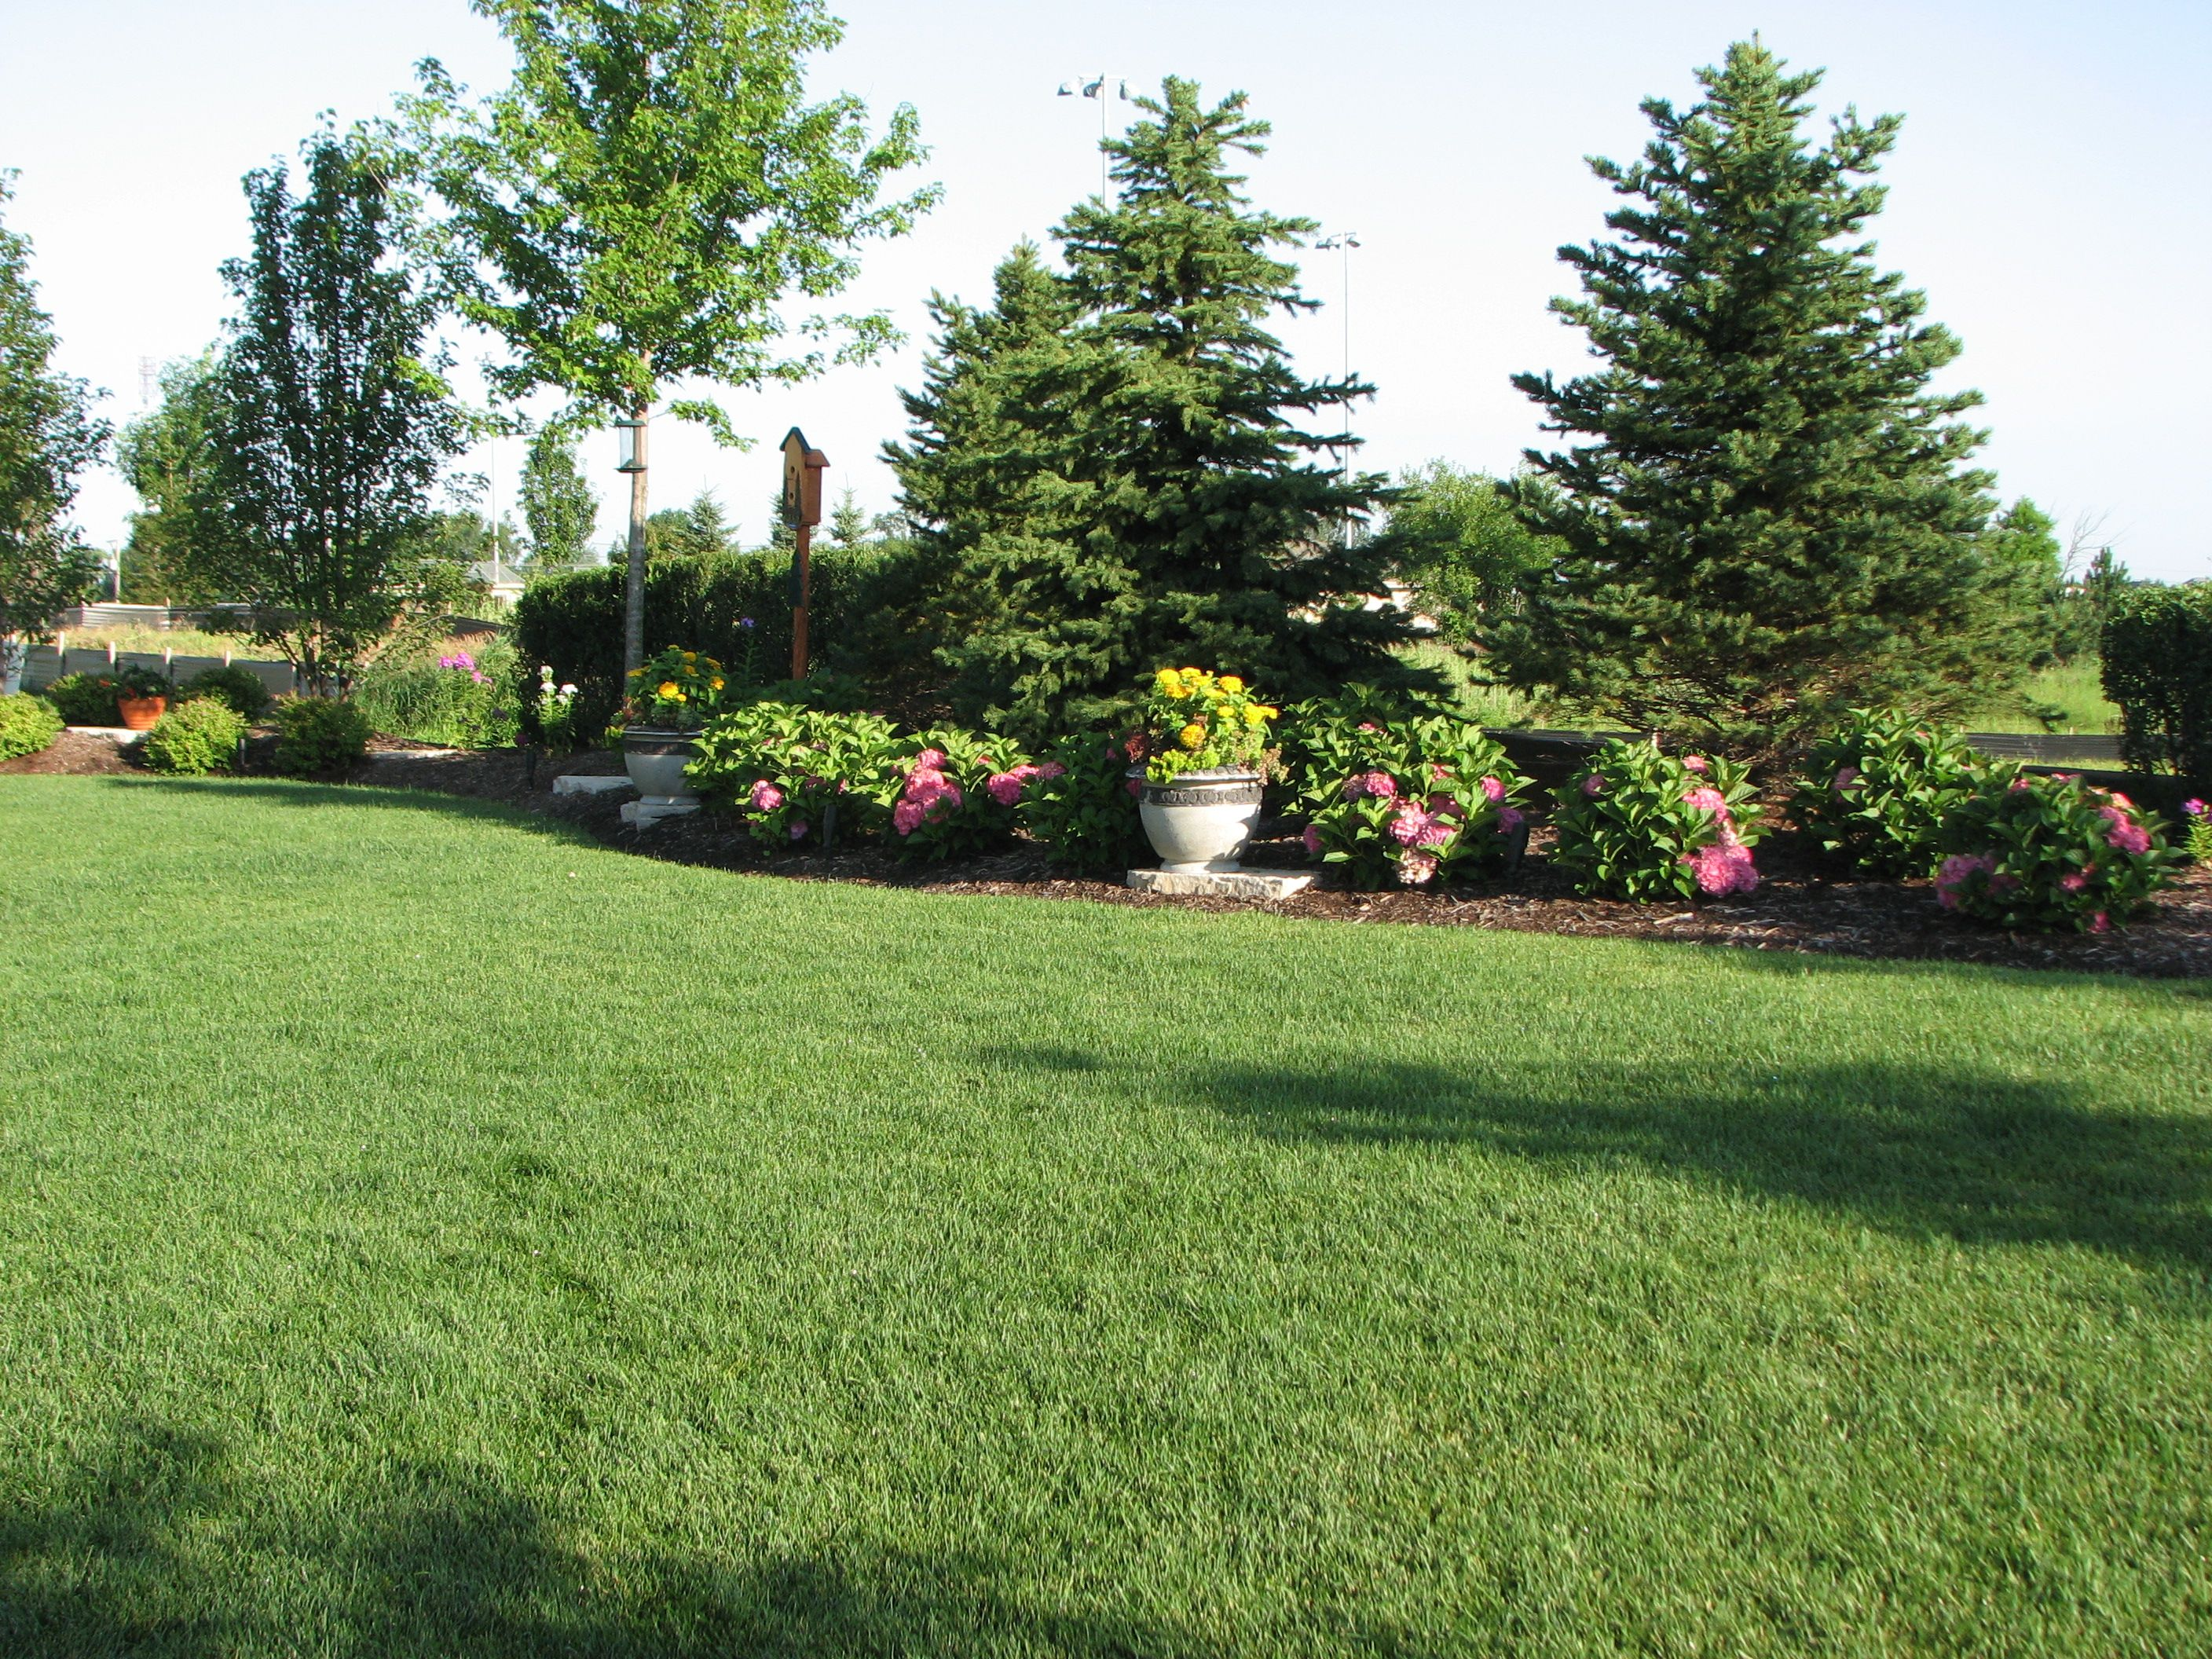 Backyard landscaping for privacy existing home for Backyard garden